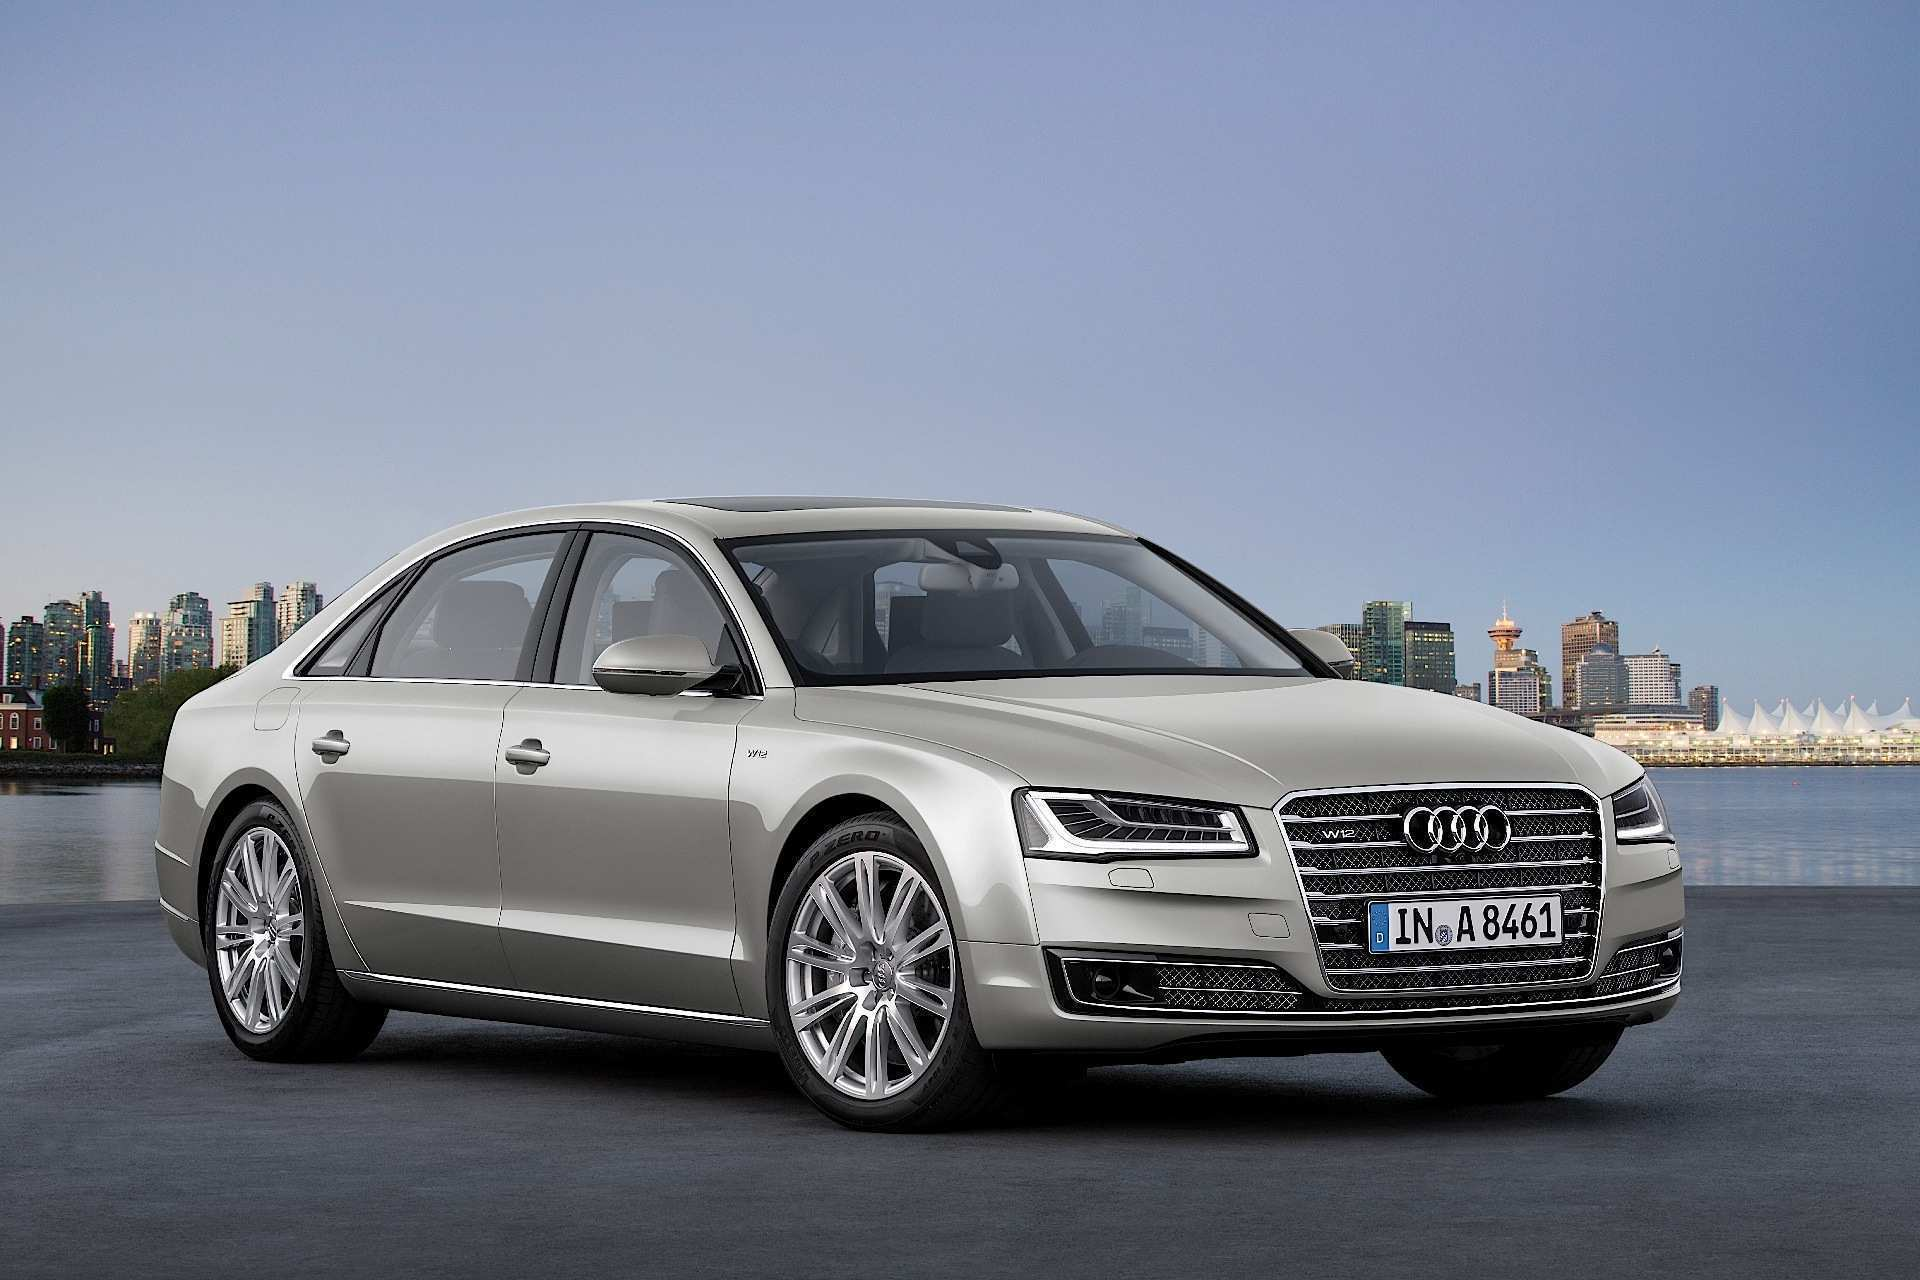 64 The 2020 Audi A8 L In Usa New Model and Performance